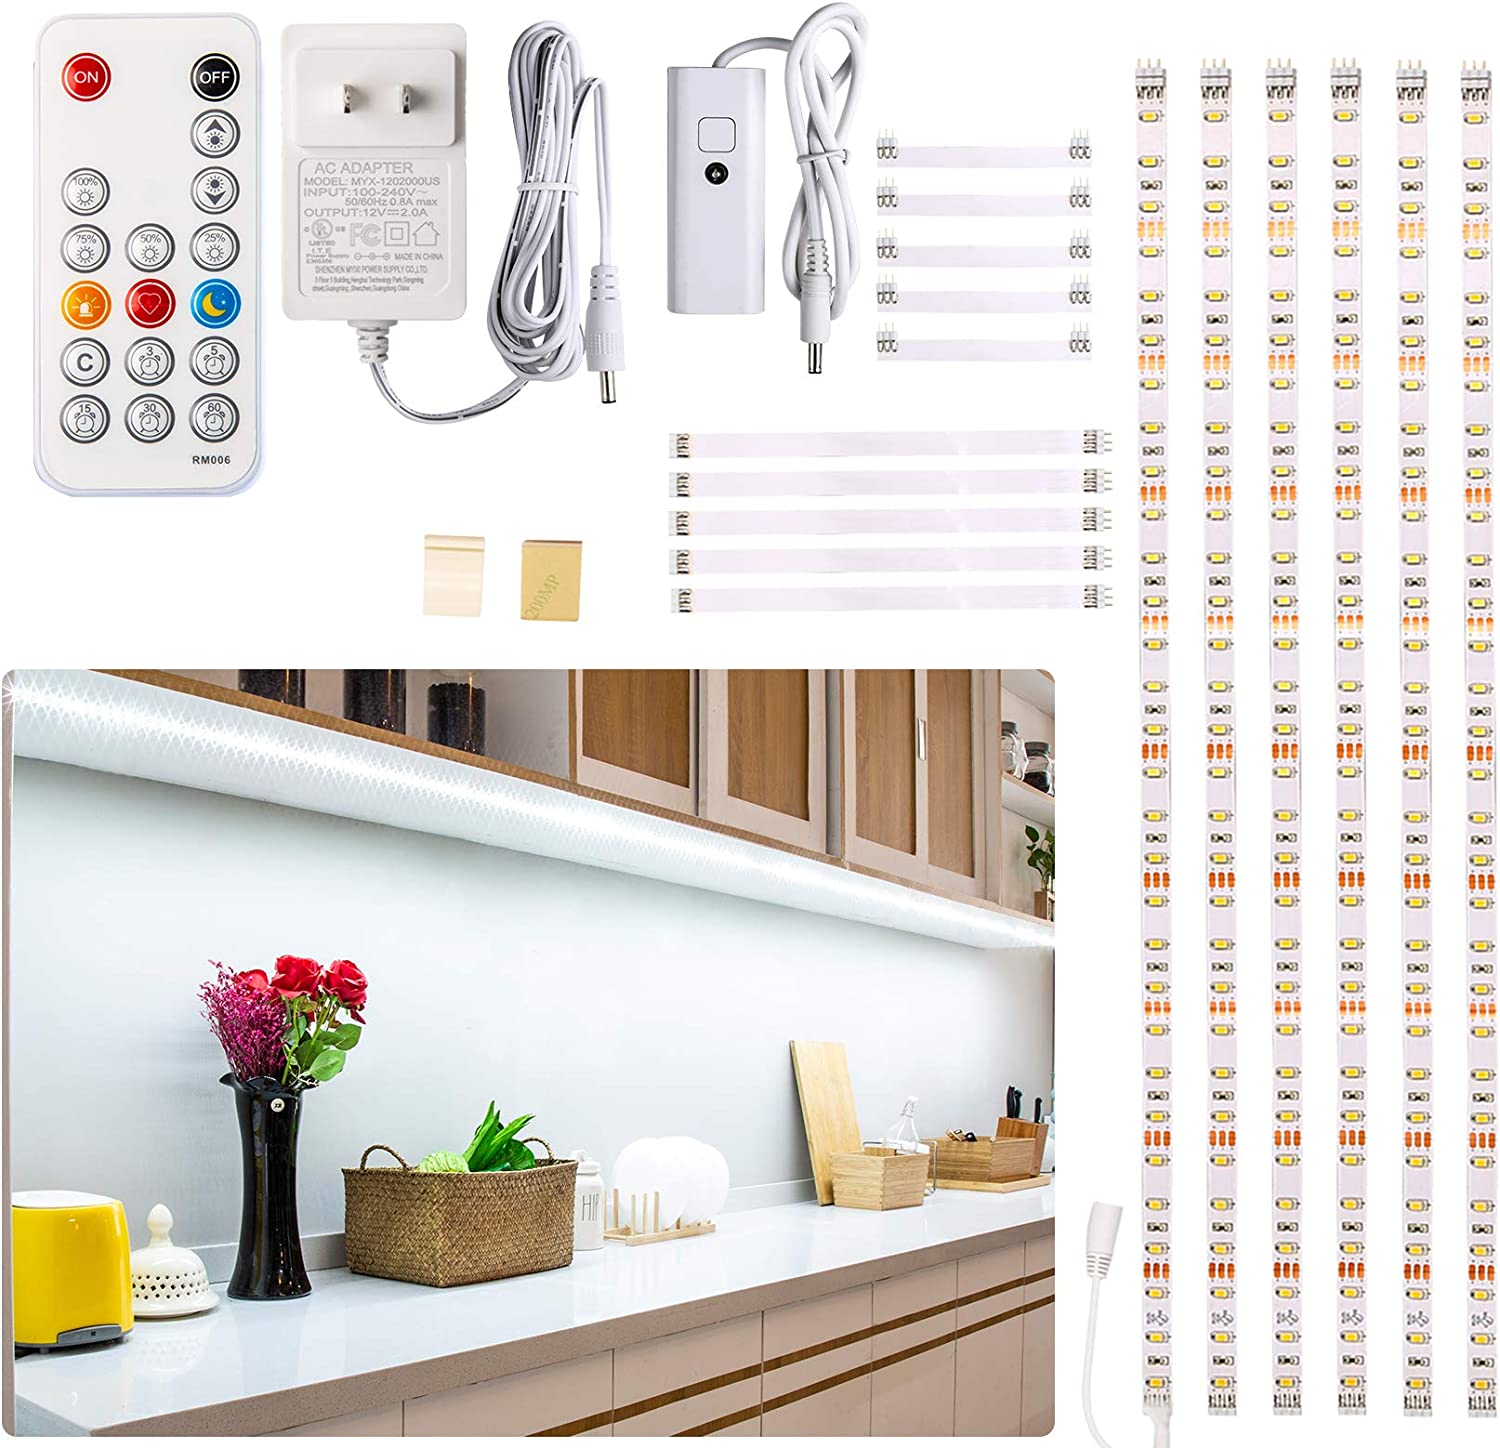 Under Counter Light Dimmable Led Under Cabinet Lighting 6 Pcs Led Strip Light Bars With Remote Control For Kitchen Shelf Pantry Showcase Desk Cupboard 6000k White Timing 16w 1500lm 9 8 Ft Amazon Com